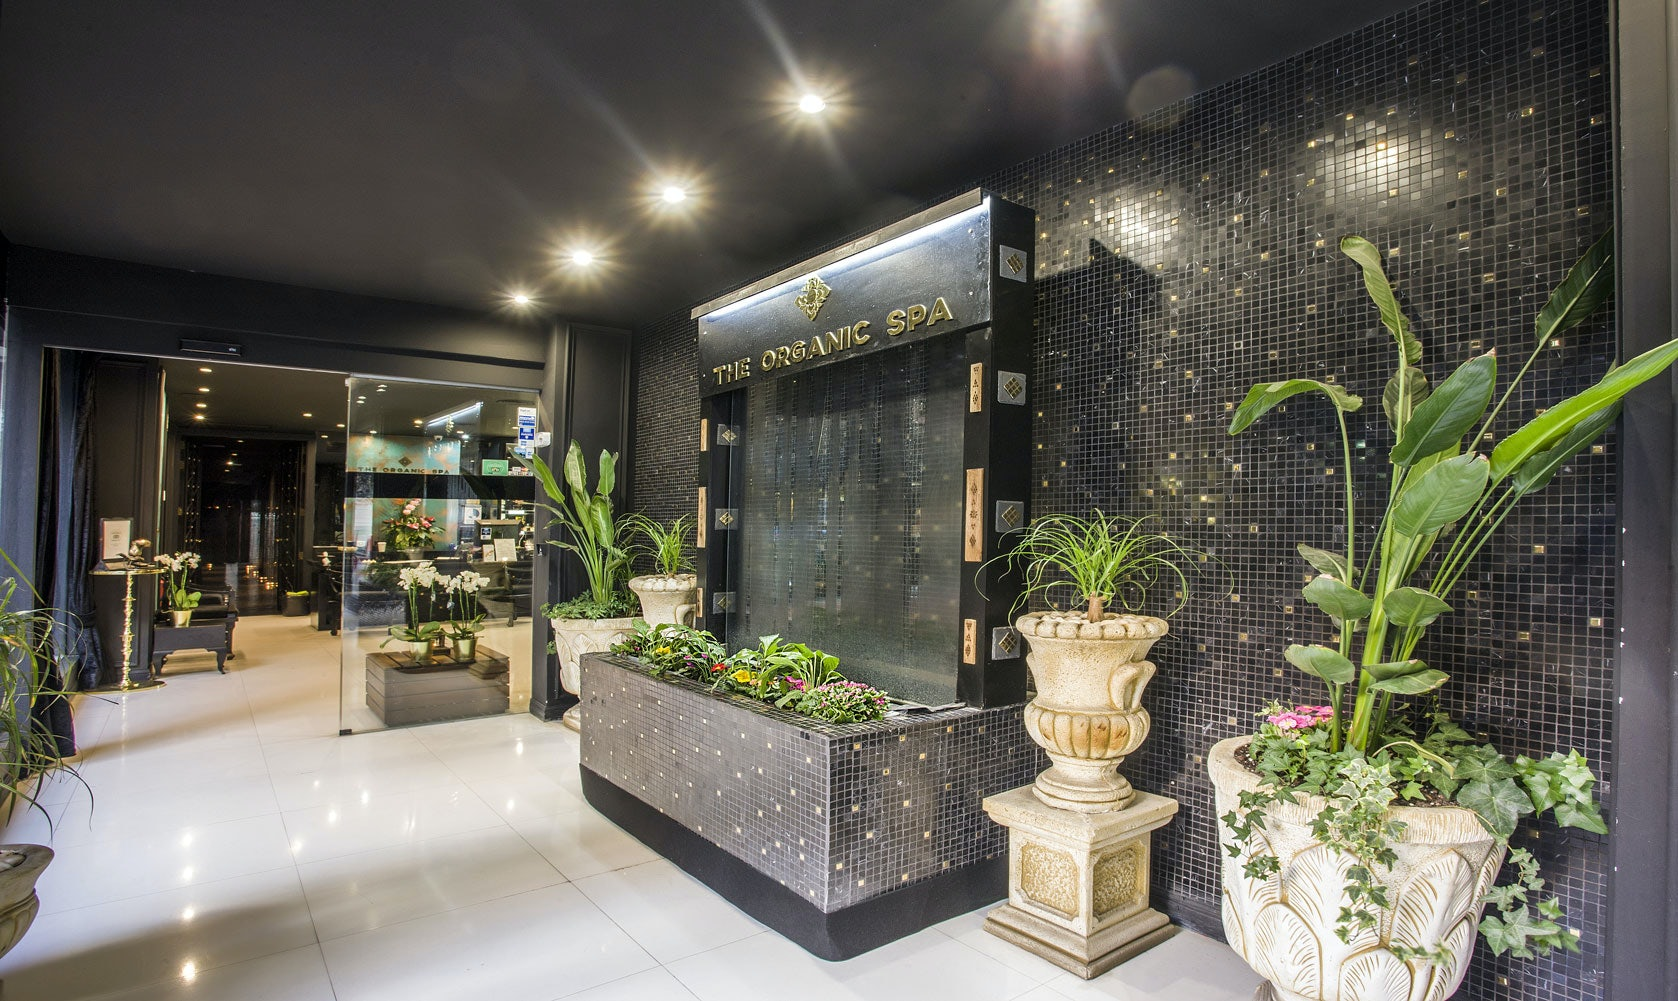 The Organic Spa in Madrid